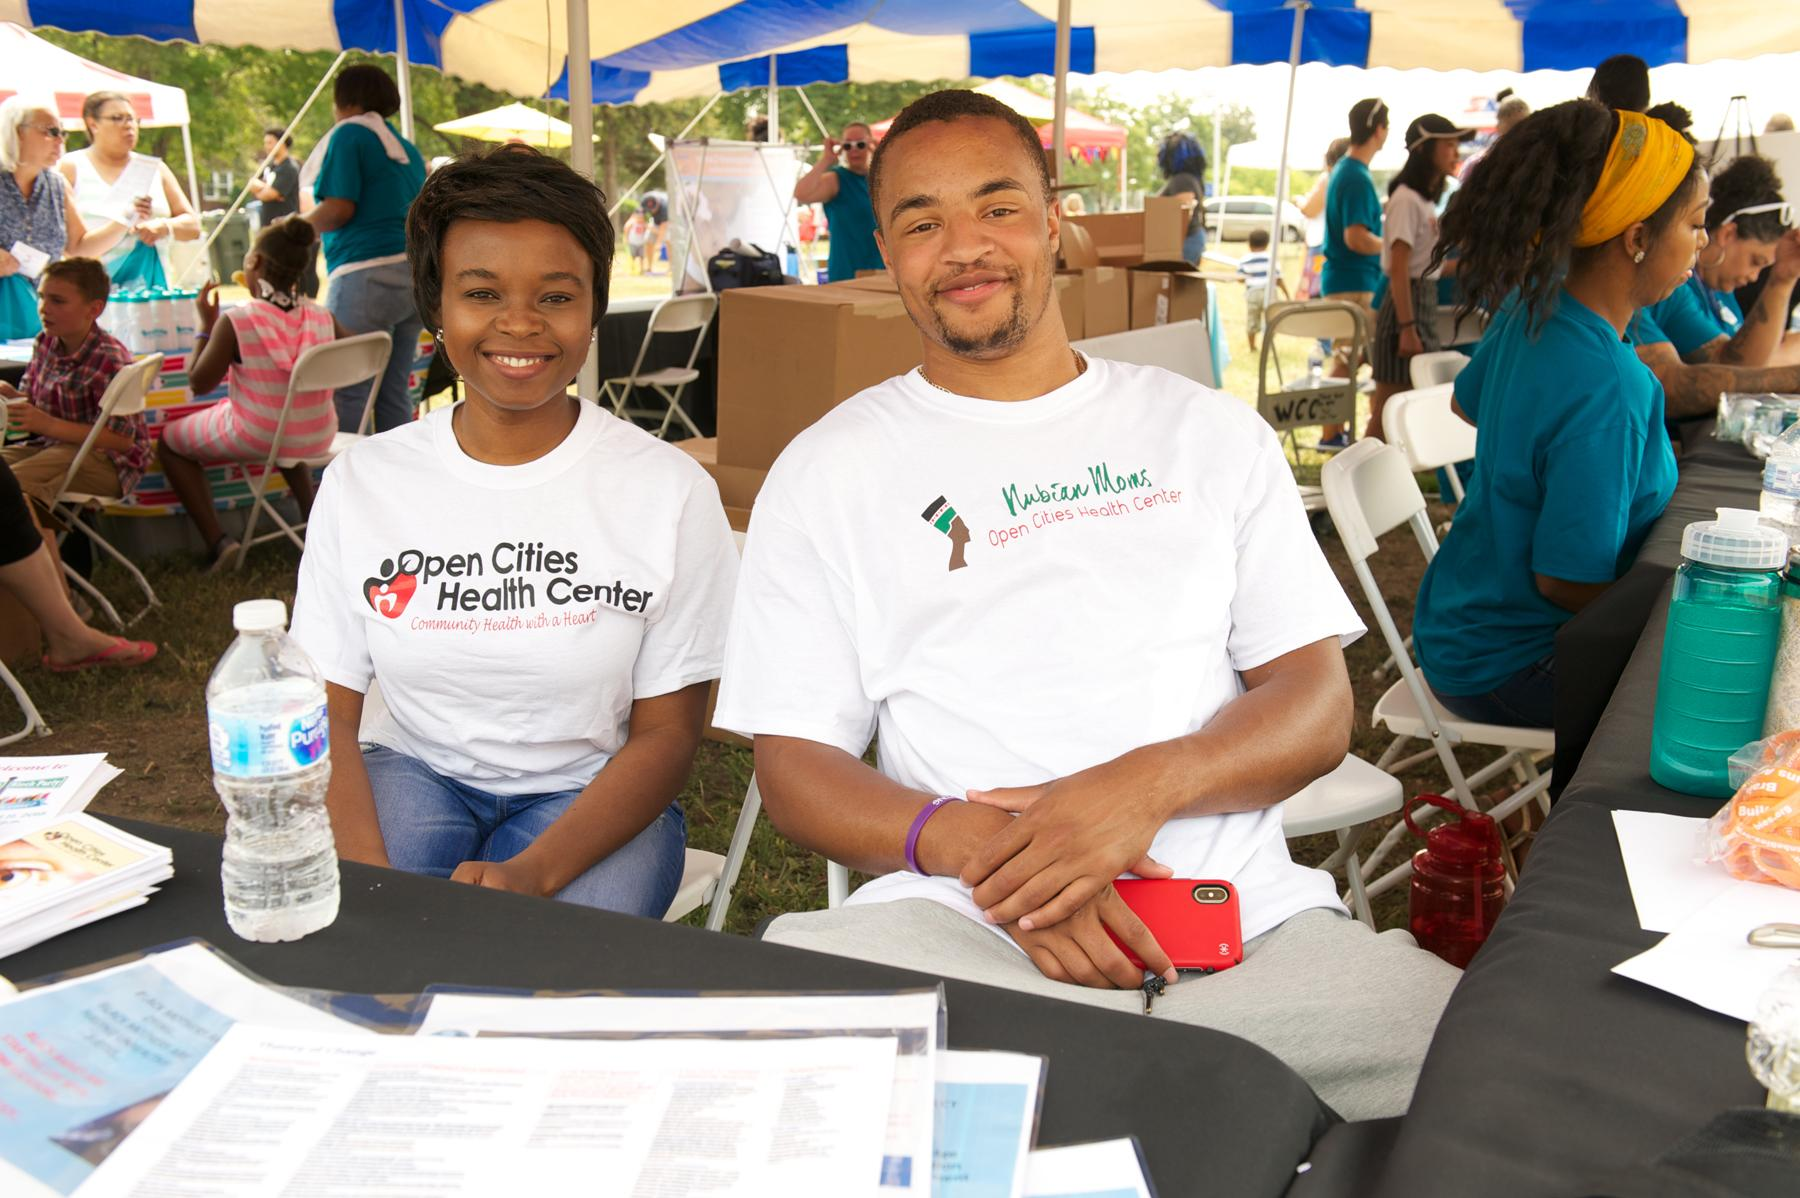 Open Cities Health Center at Wilder Block Party 2018 in Saint Paul, MN